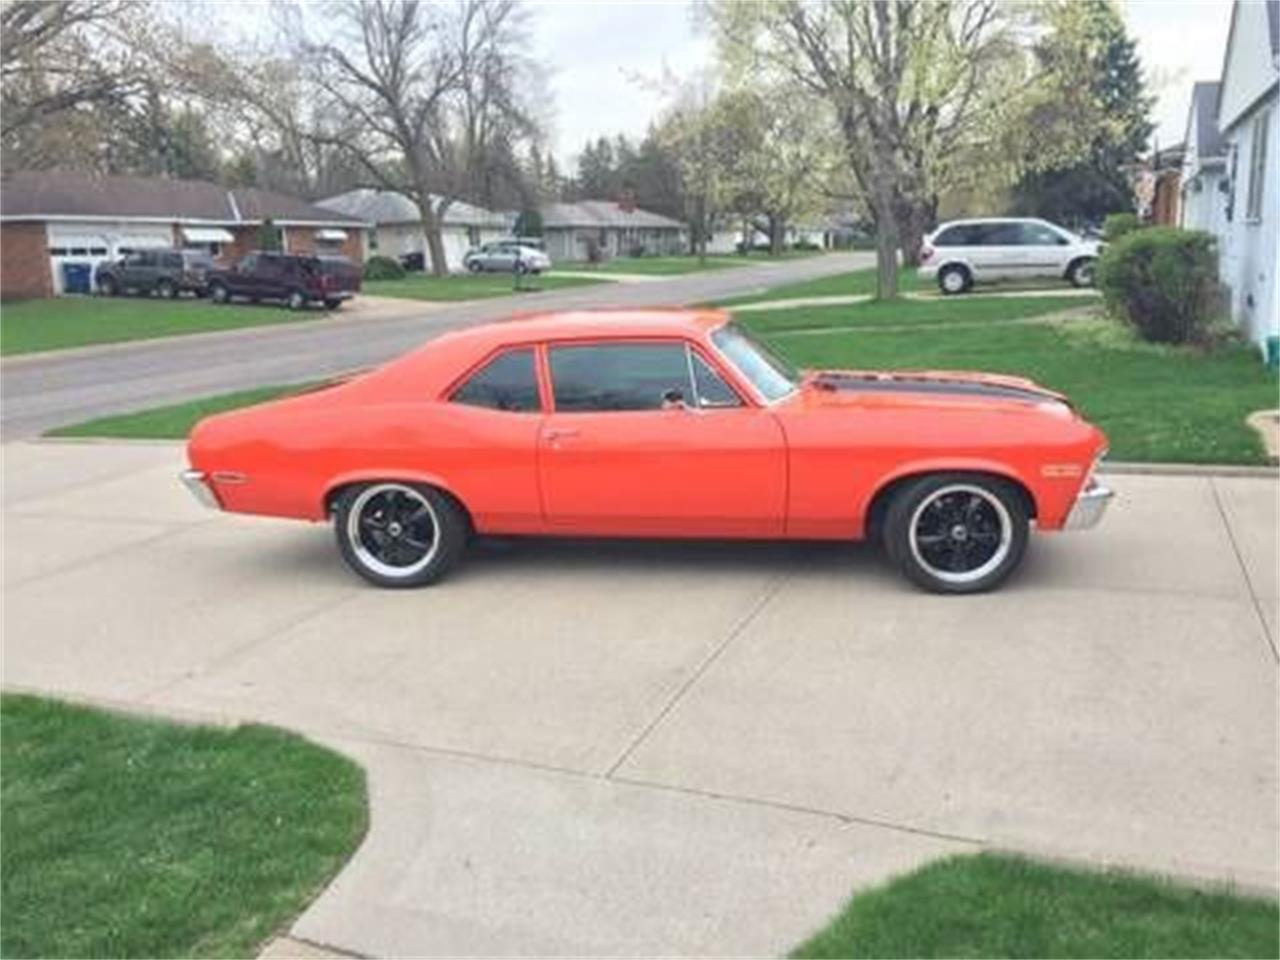 Large Picture of '70 Nova - $34,995.00 Offered by Classic Car Deals - NZWN